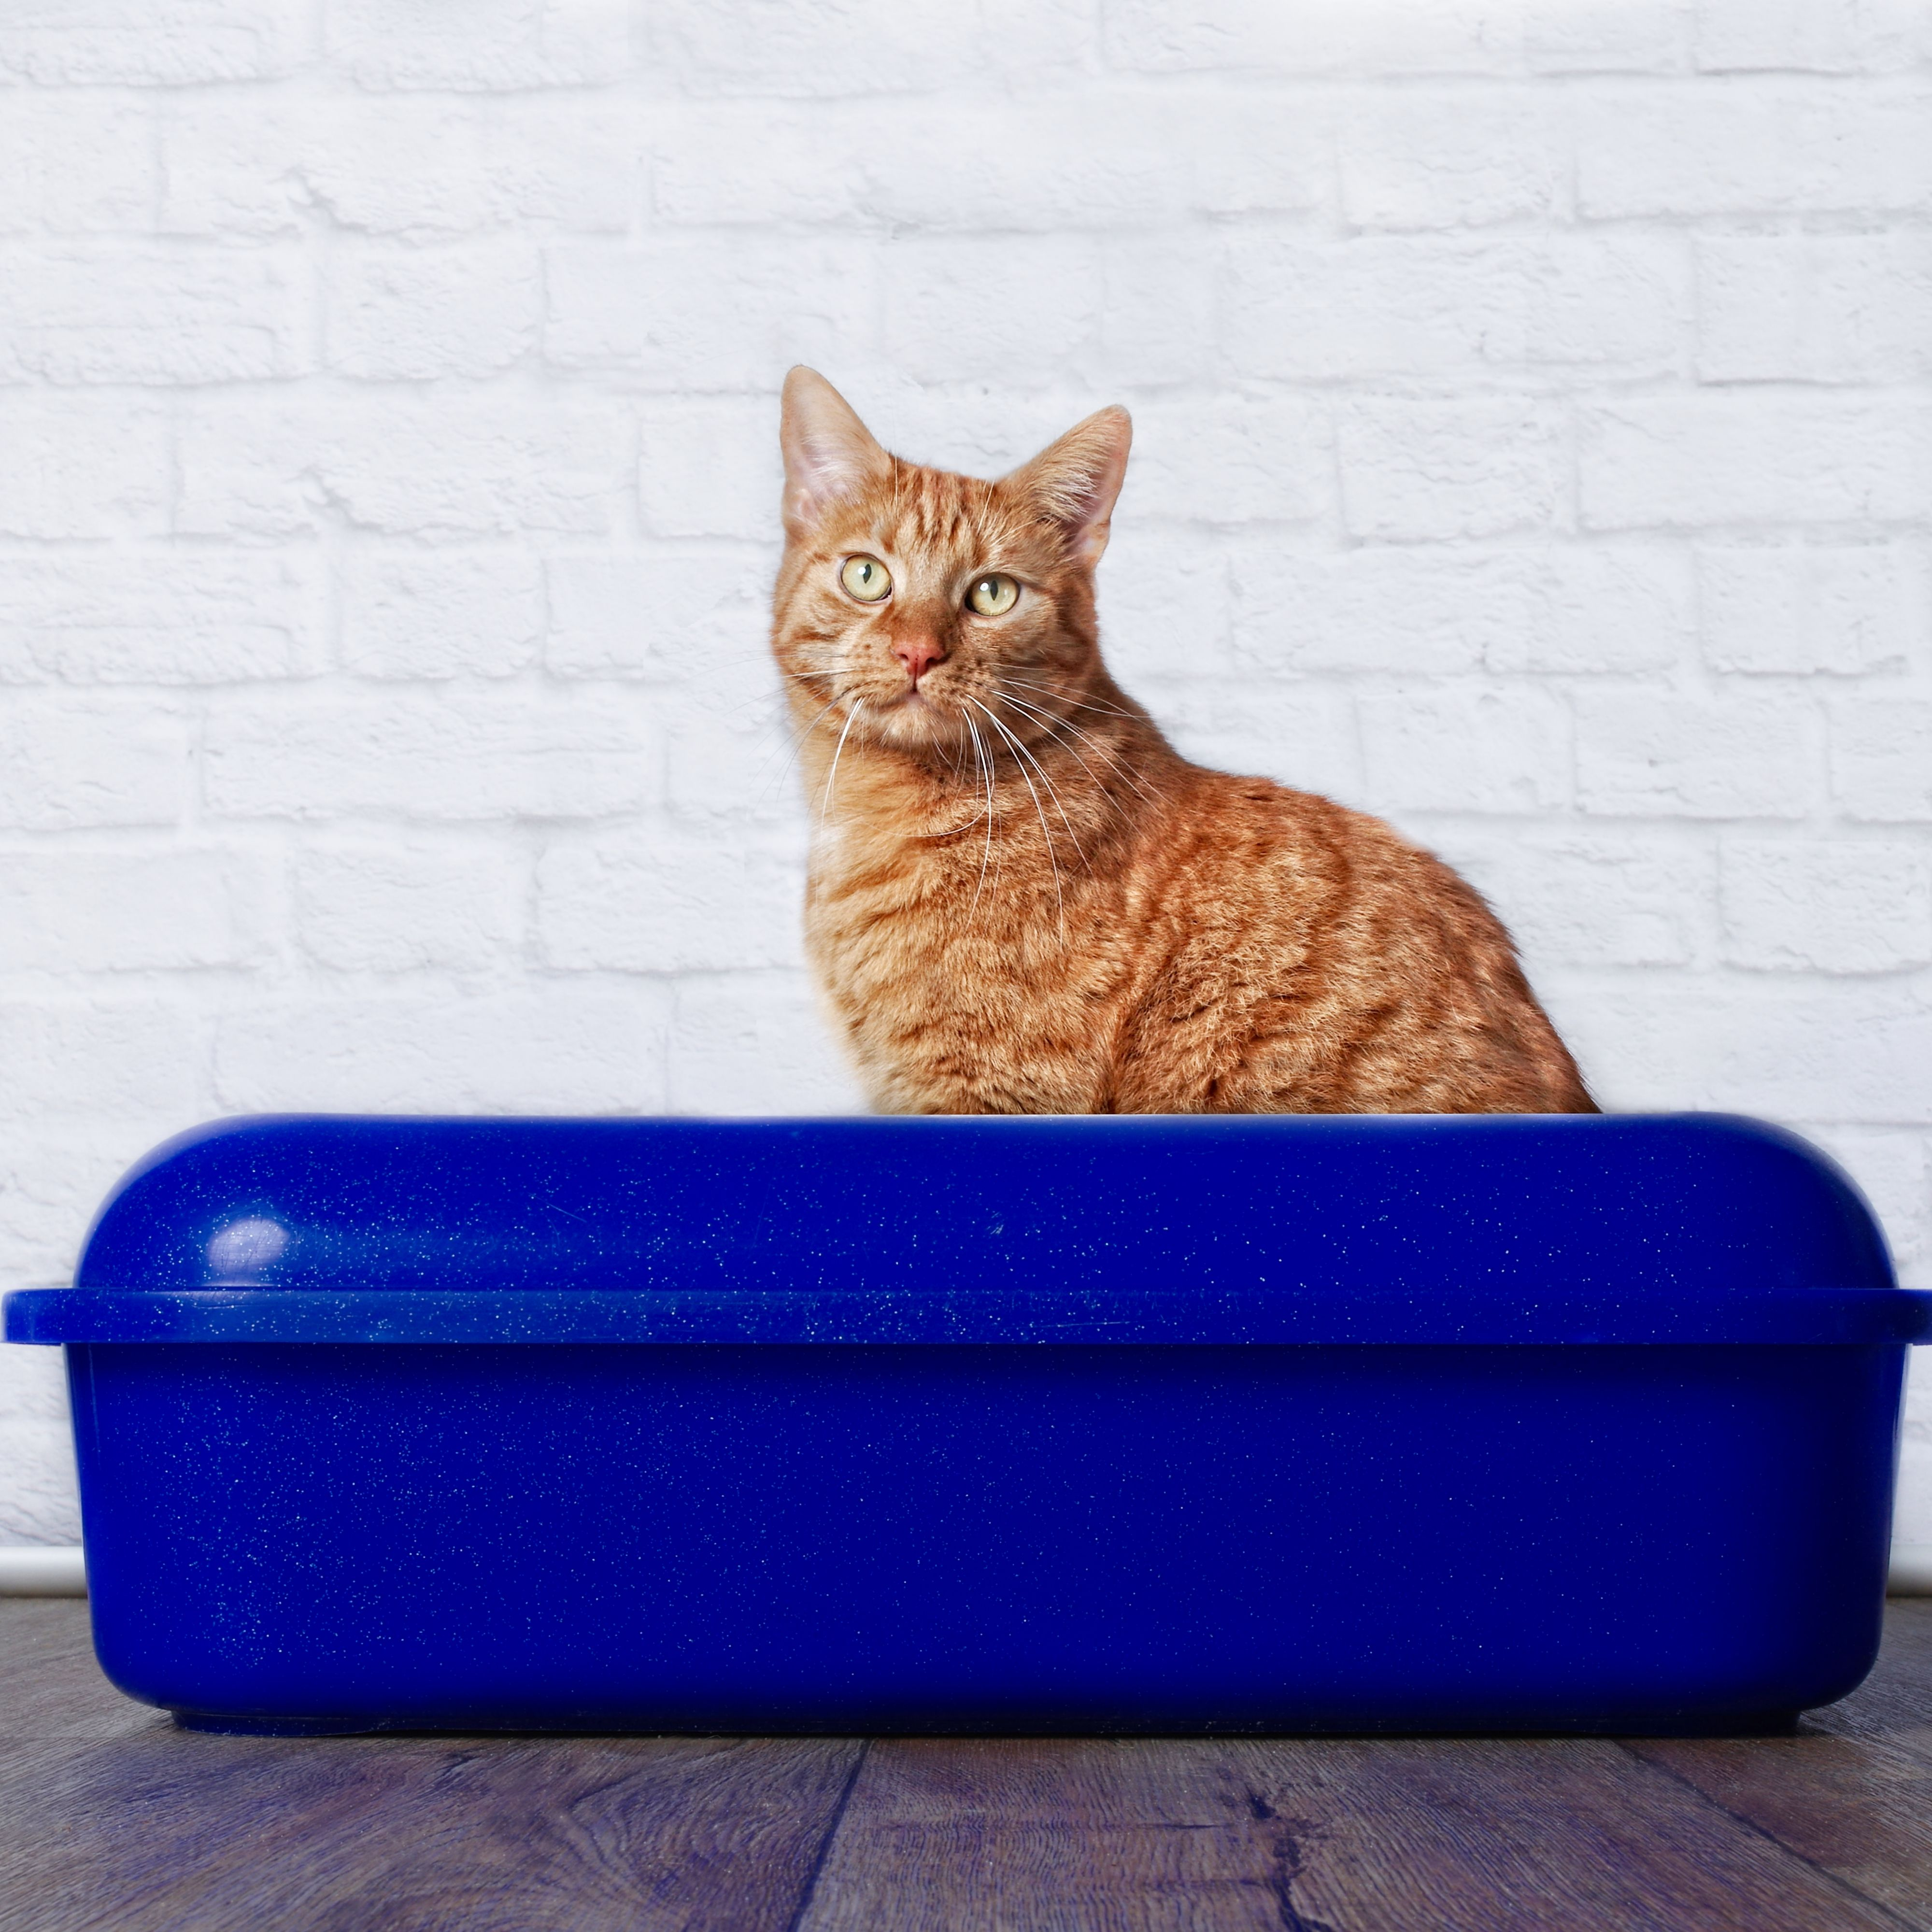 Ginger cat sitting in a litter box